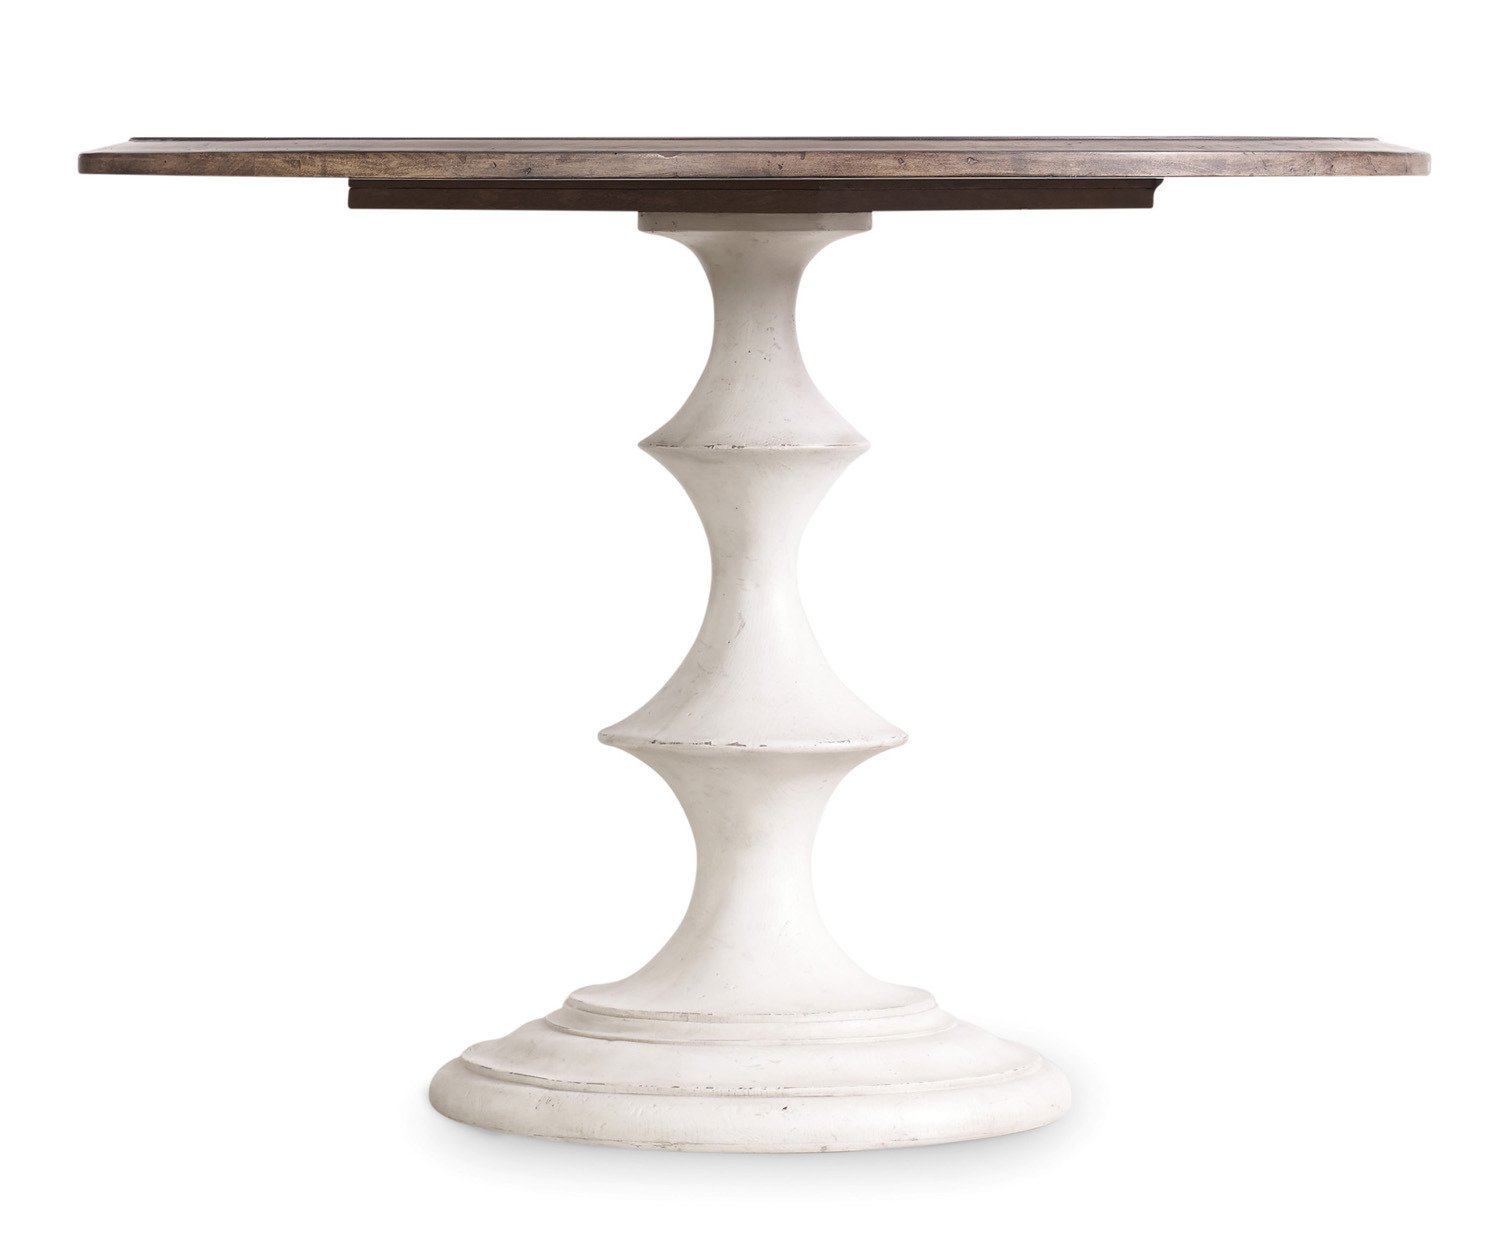 Hooker Furniture Melange Brynlee 42 Round Pedestal Dining Table in Walnut and Distressed White